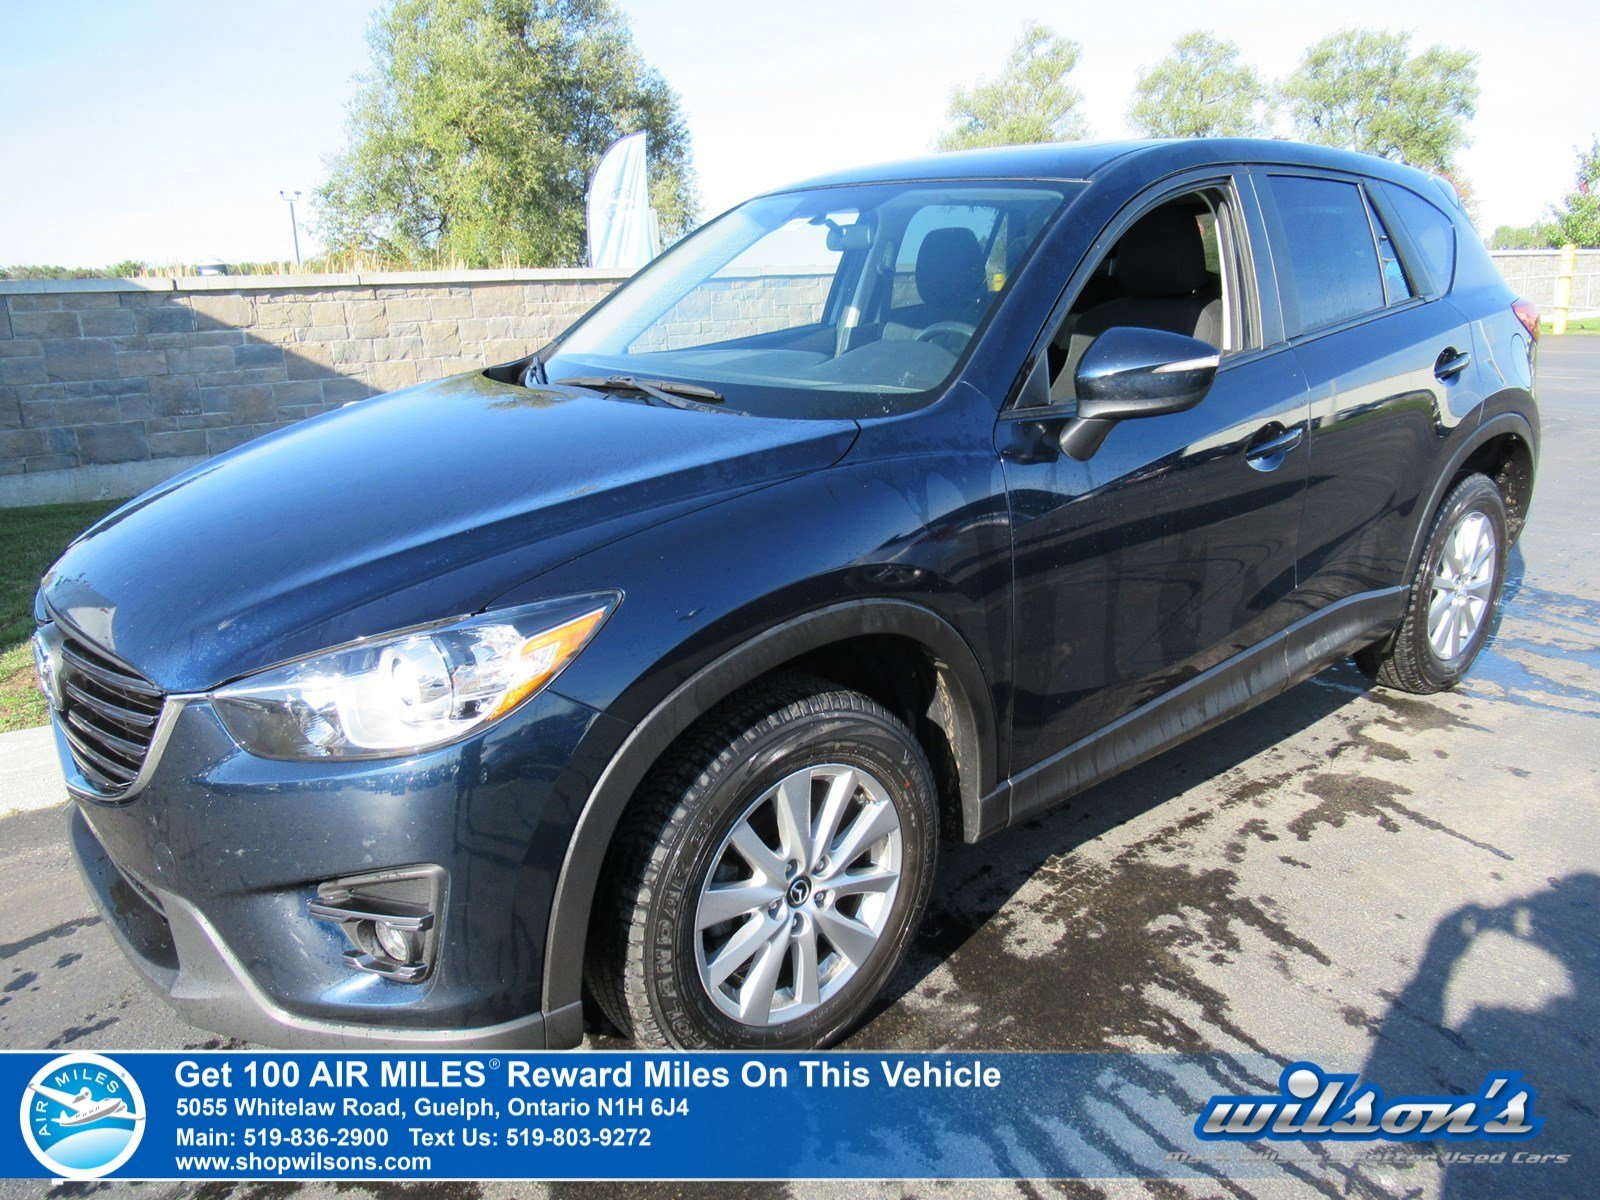 Certified Pre-Owned 2016 Mazda CX-5 GS-Navigation, Sunroof, Heated Seats, Bluetooth, Reverse Camera, Alloy Wheels and more!